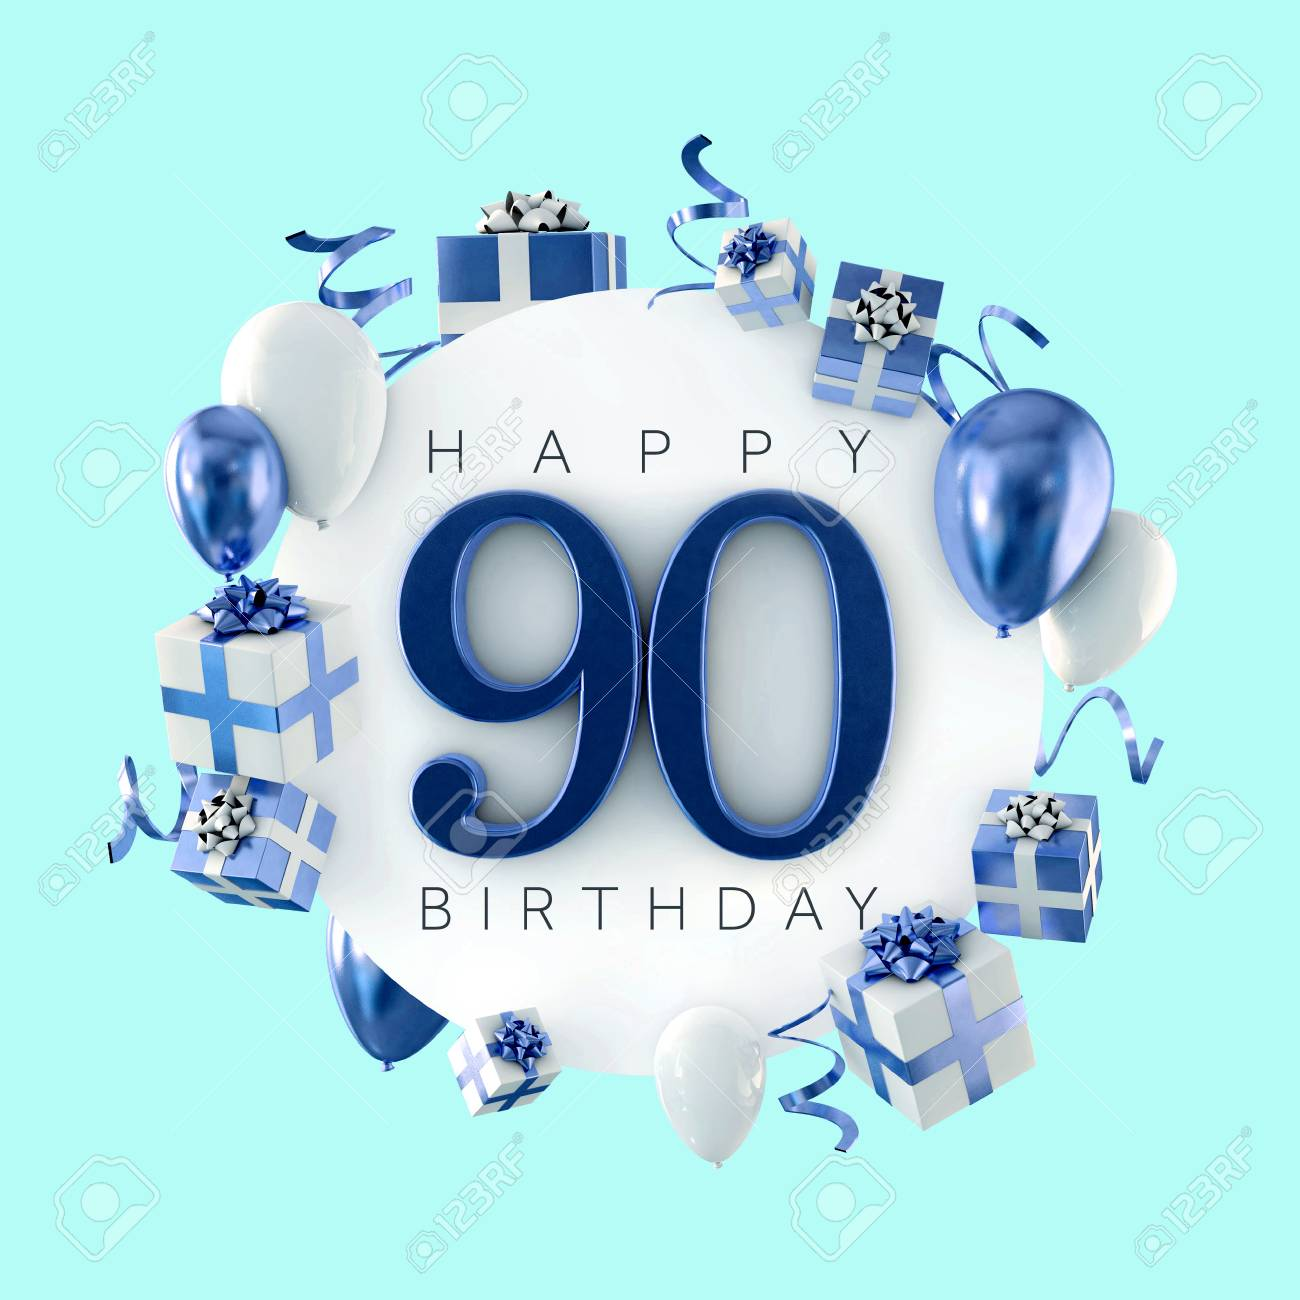 Happy 90th birthday party composition with balloons and presents. 3D Render - 119807161